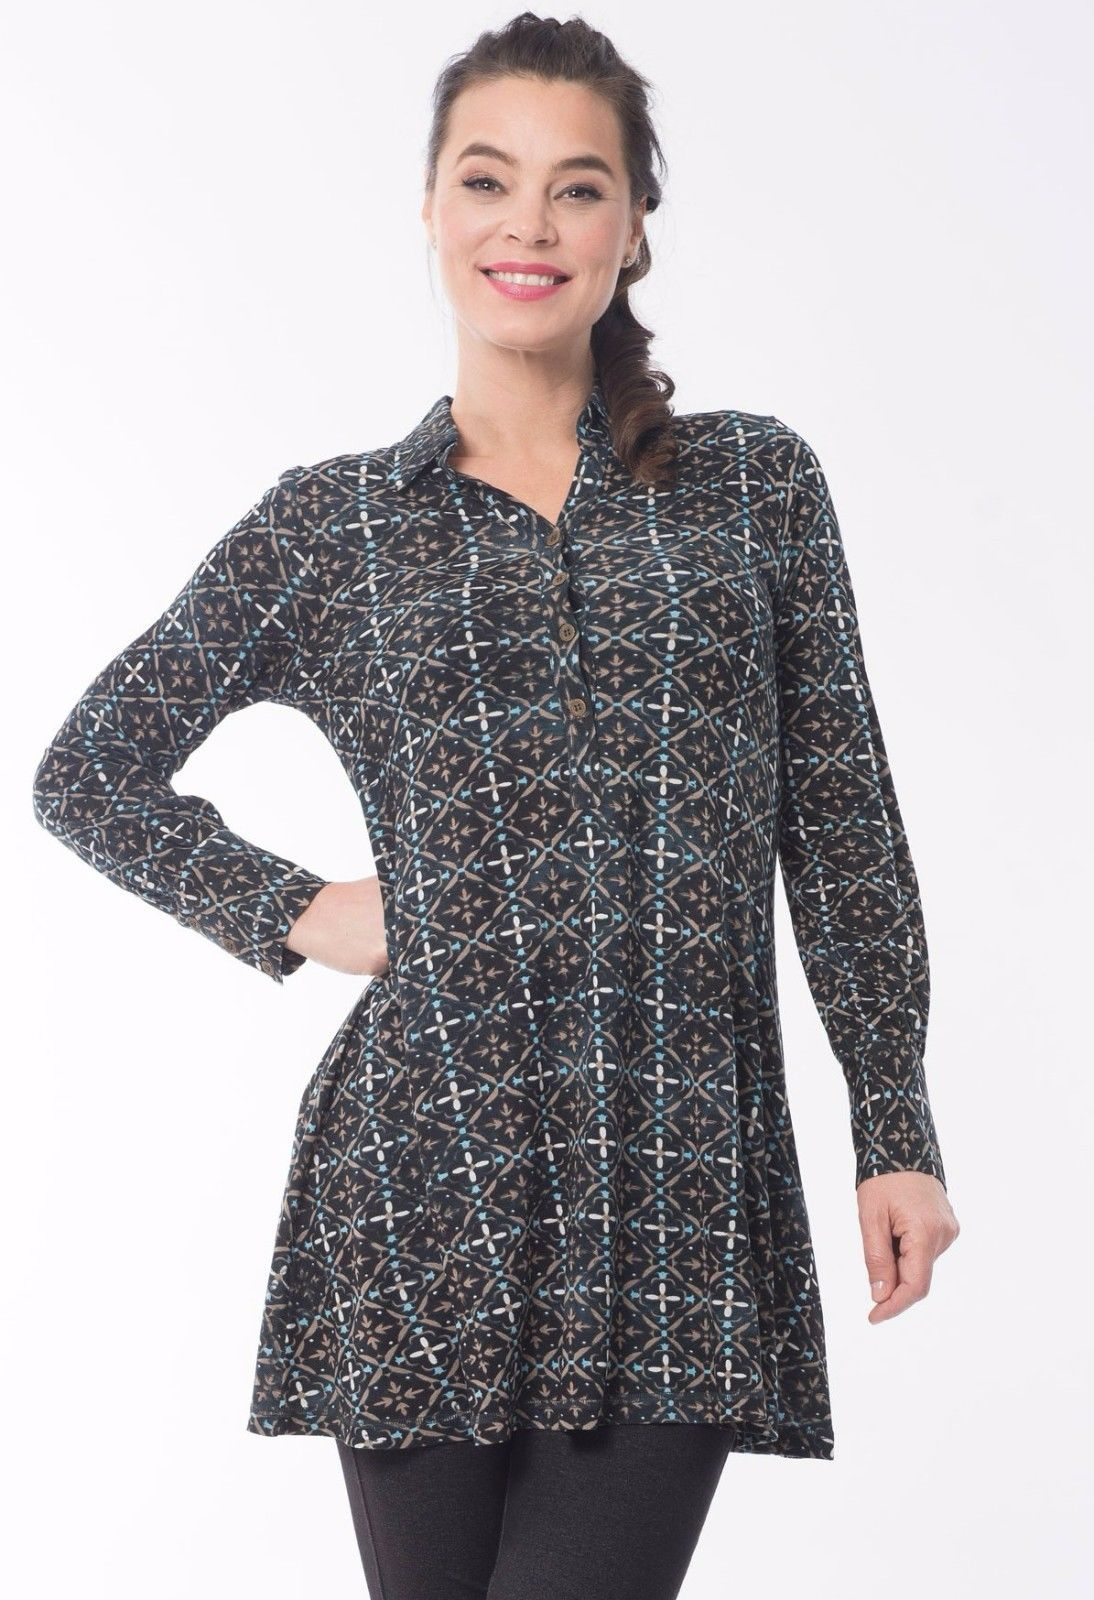 Paisley-Patch-Womens-Ladies-Tunic-Shirt-Generous-Fit-Long-Sleeves-by-Orientique-382043048687